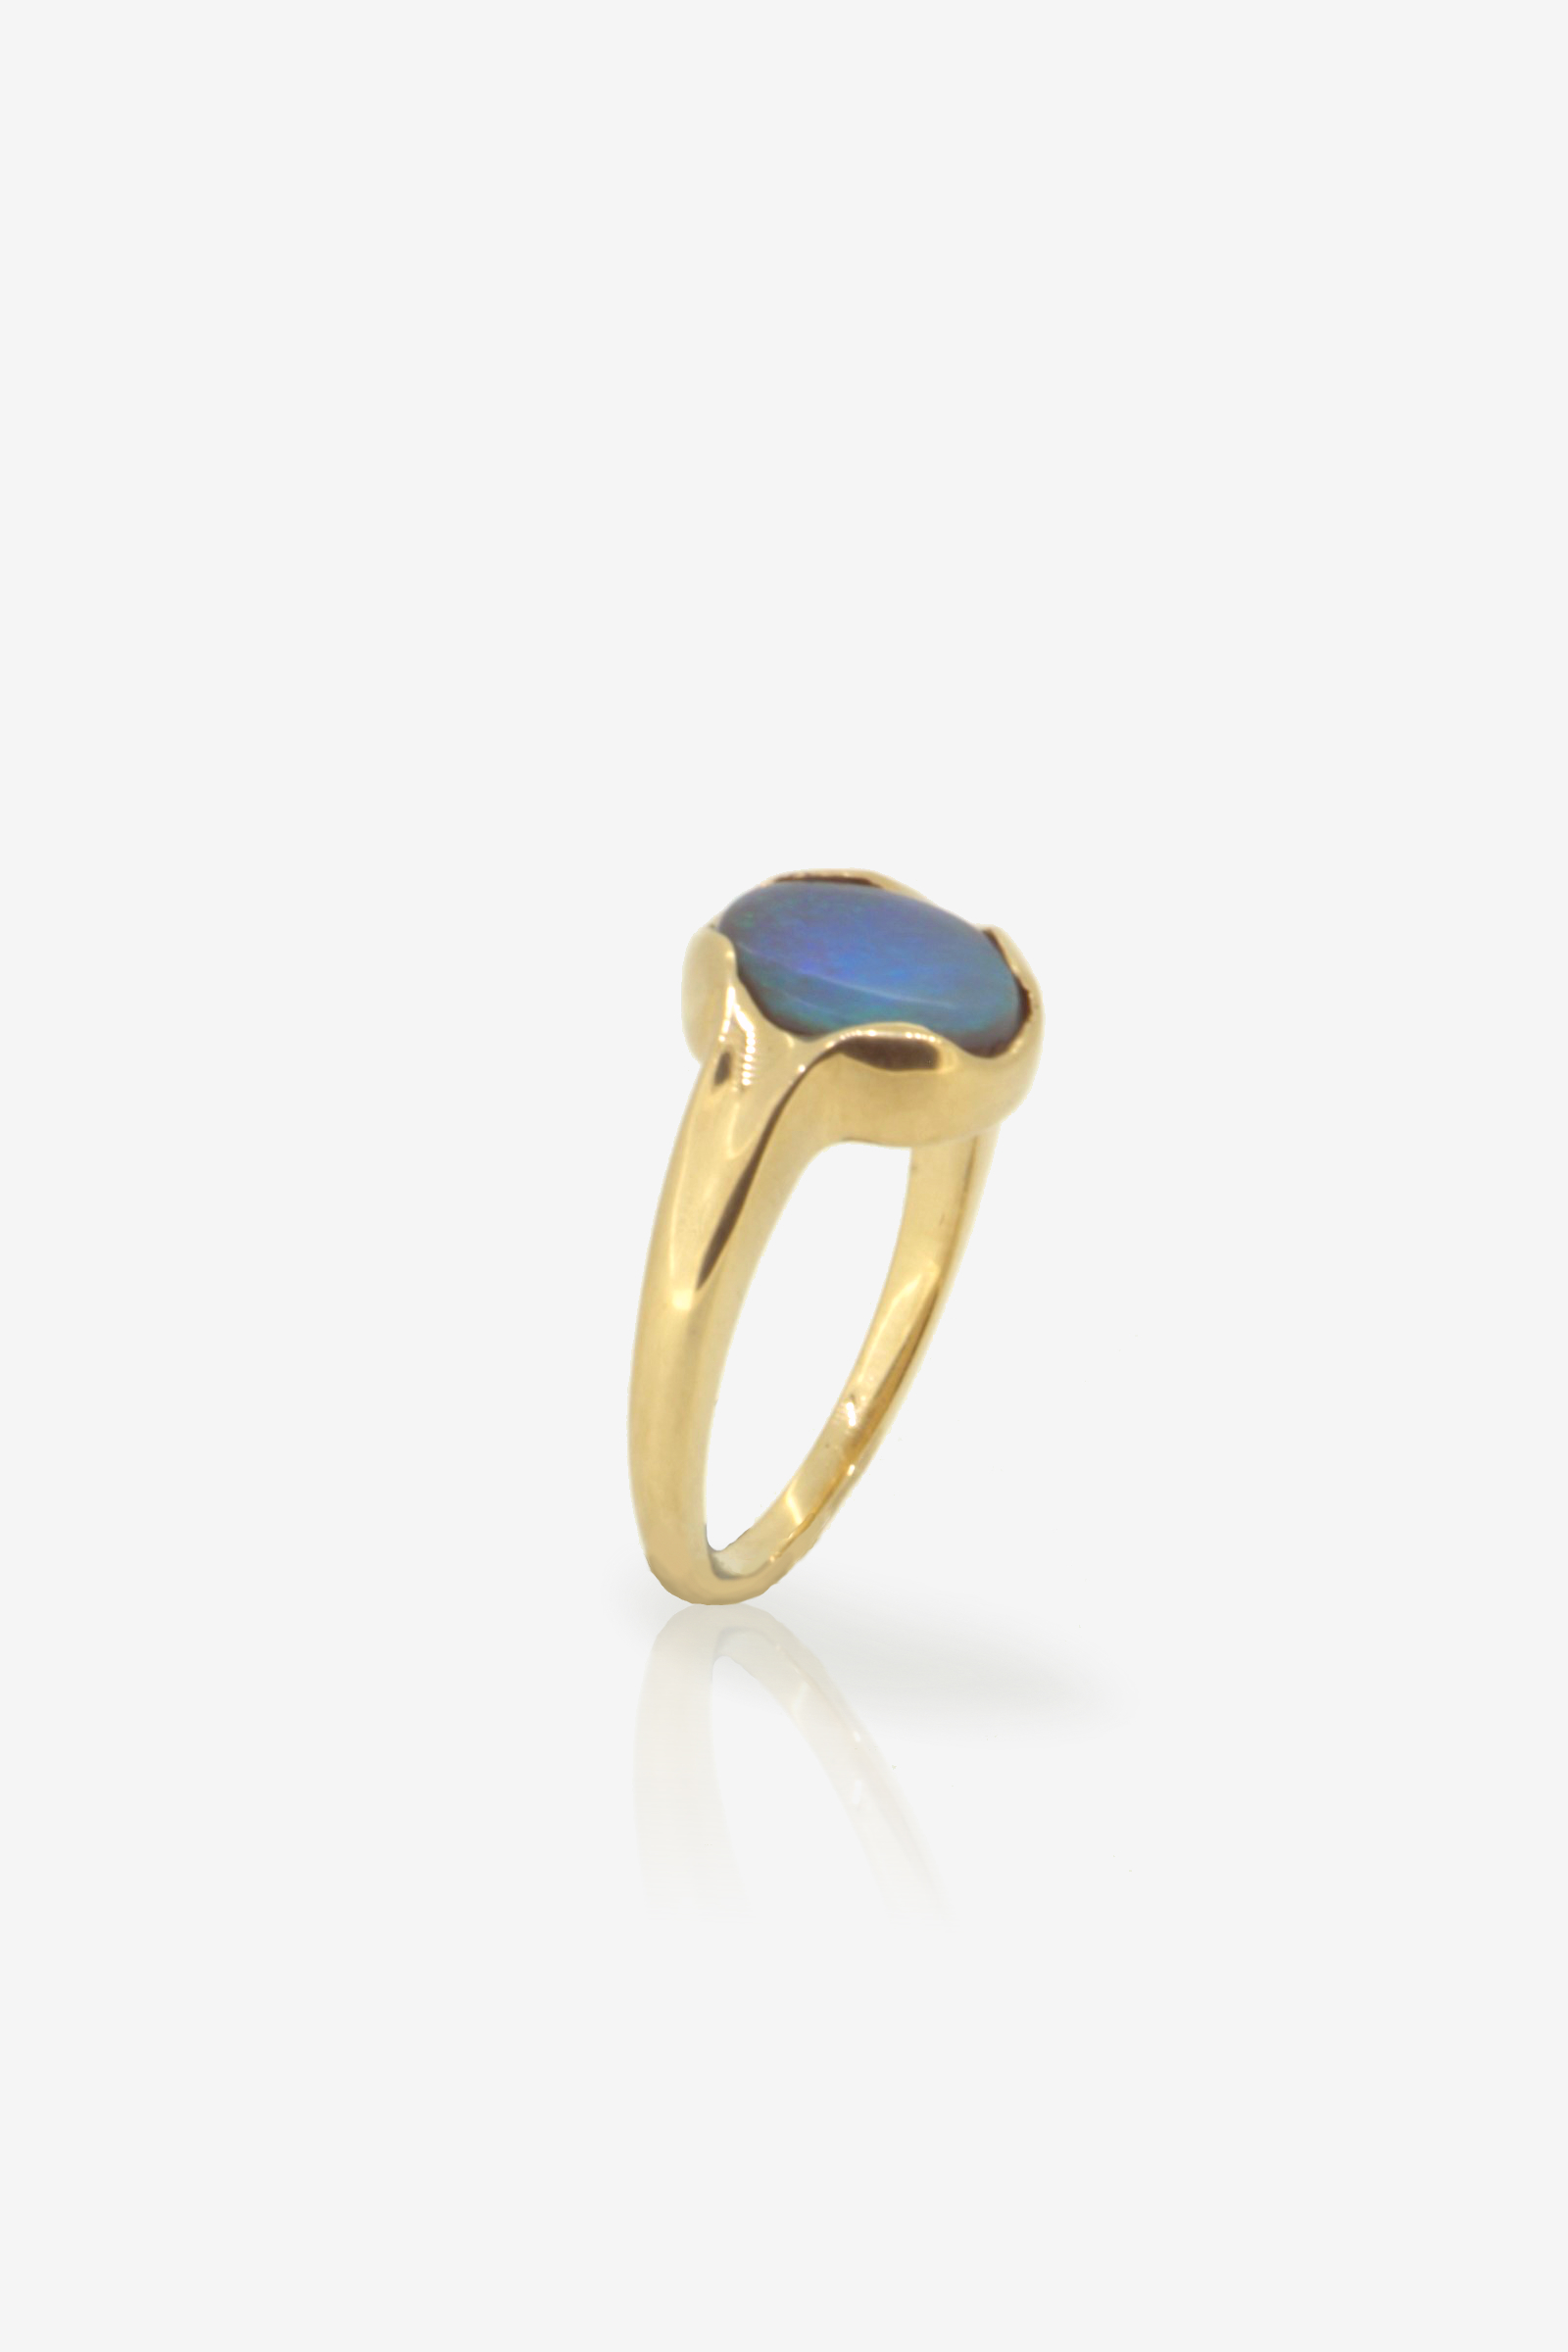 1.10ct Black Opal Fairmined Eco gold ring